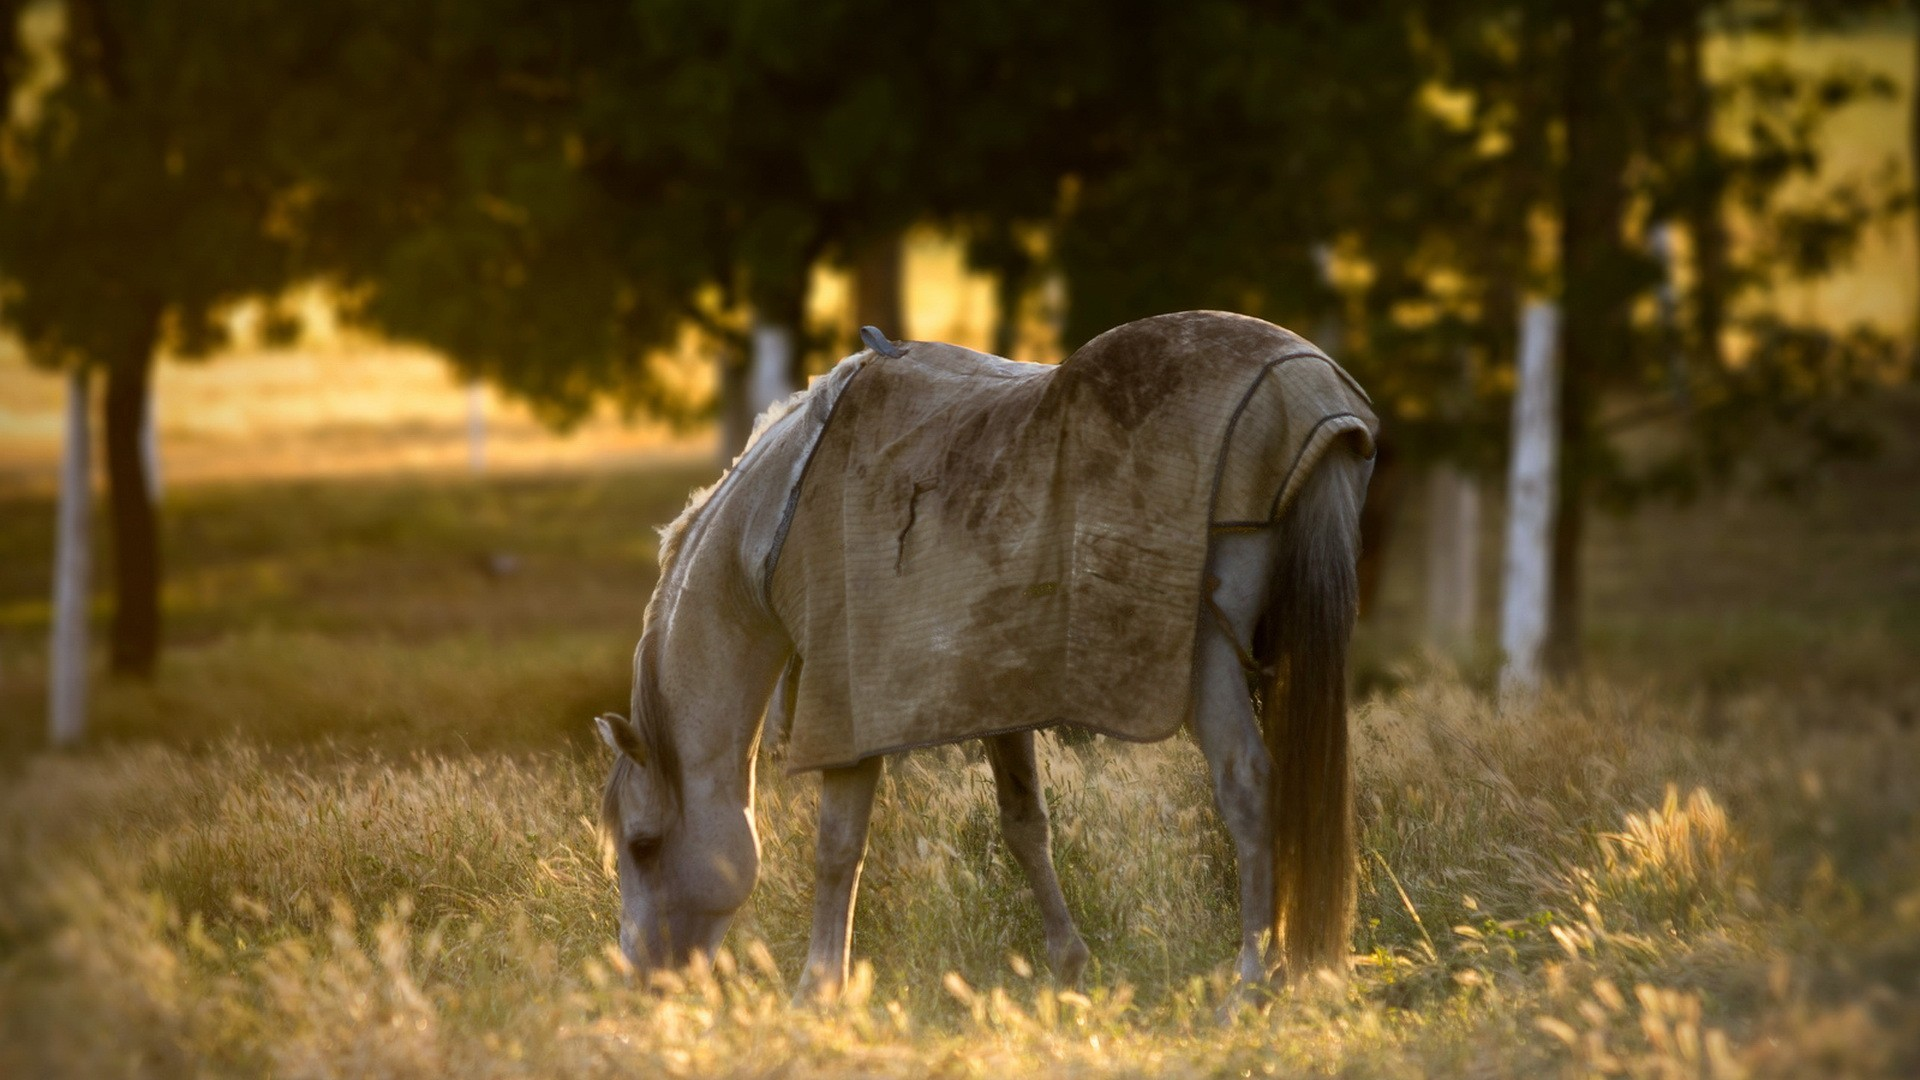 Horse Animal Filed Grass Alone Sunset Wallpaper 1920x1080 px